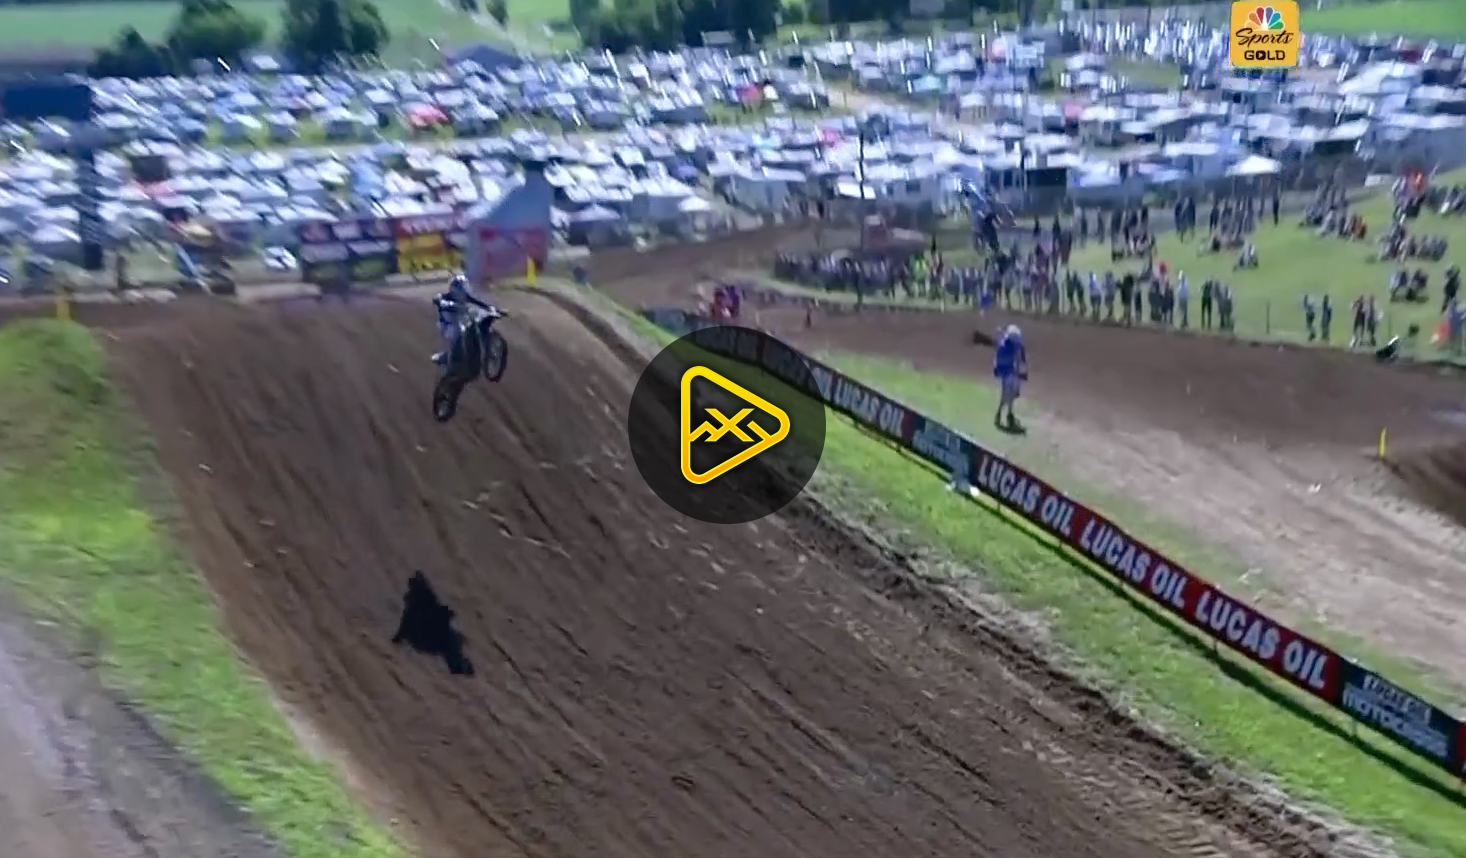 Colt Nichols Tries Larocco's Leap on 250F